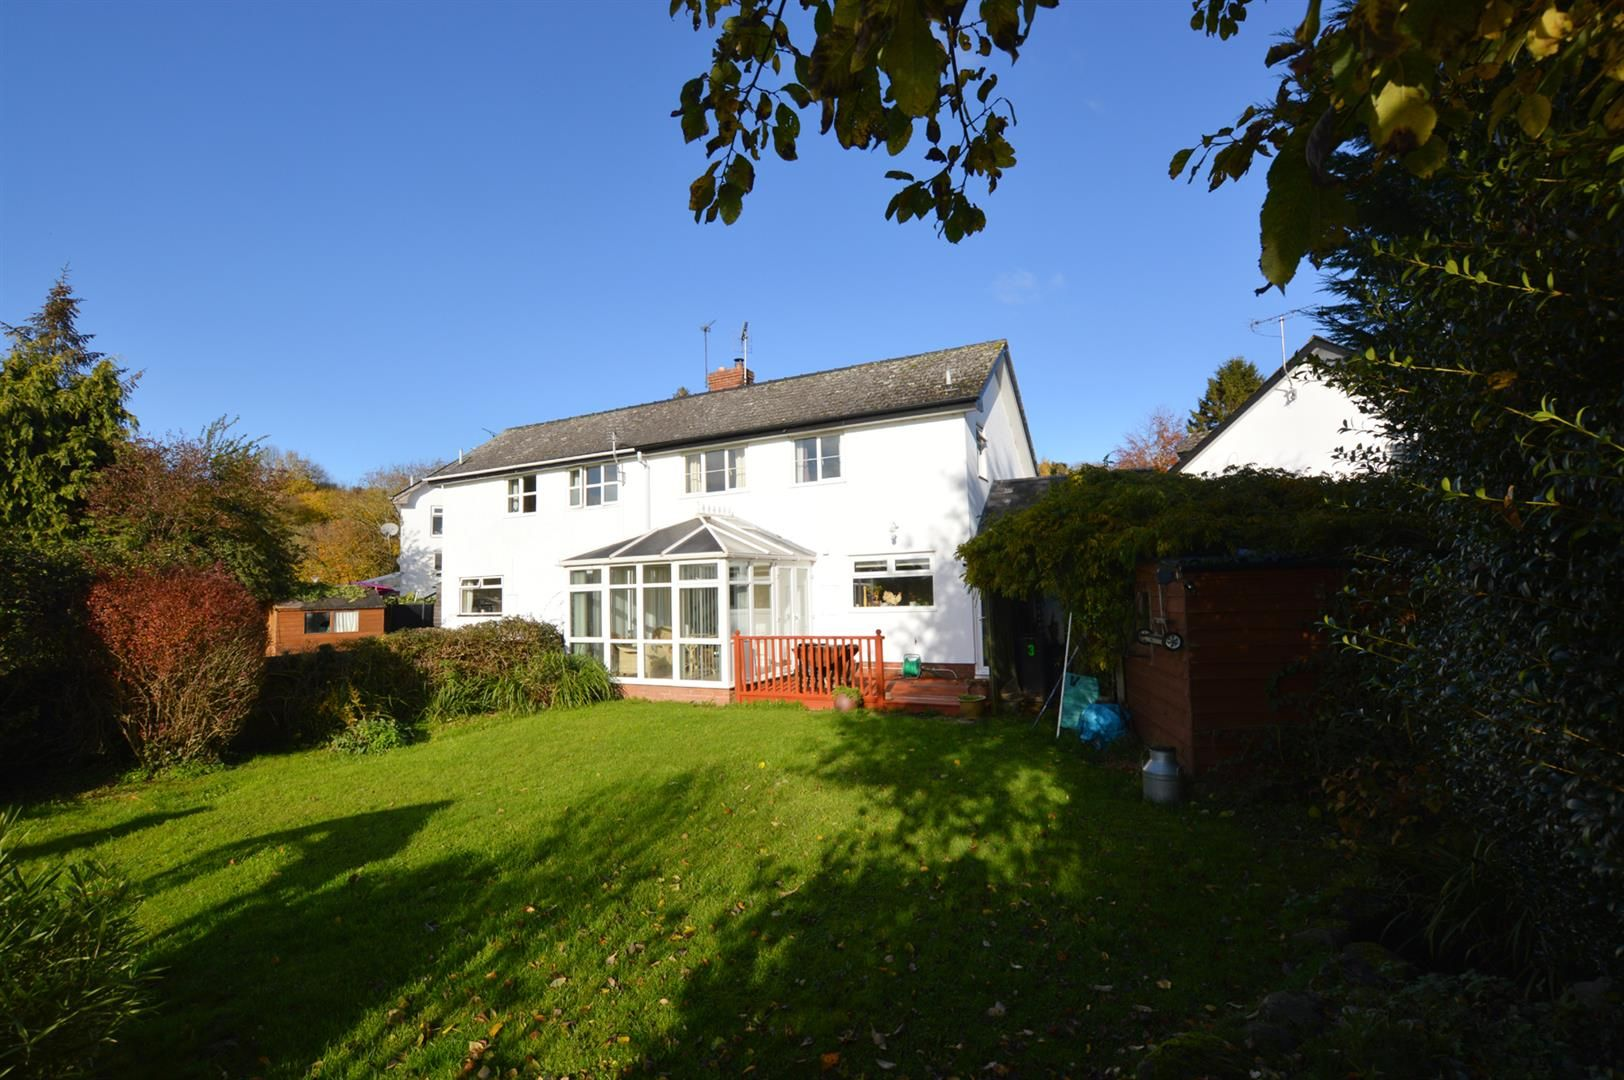 3 bed semi-detached for sale in Dilwyn  - Property Image 10